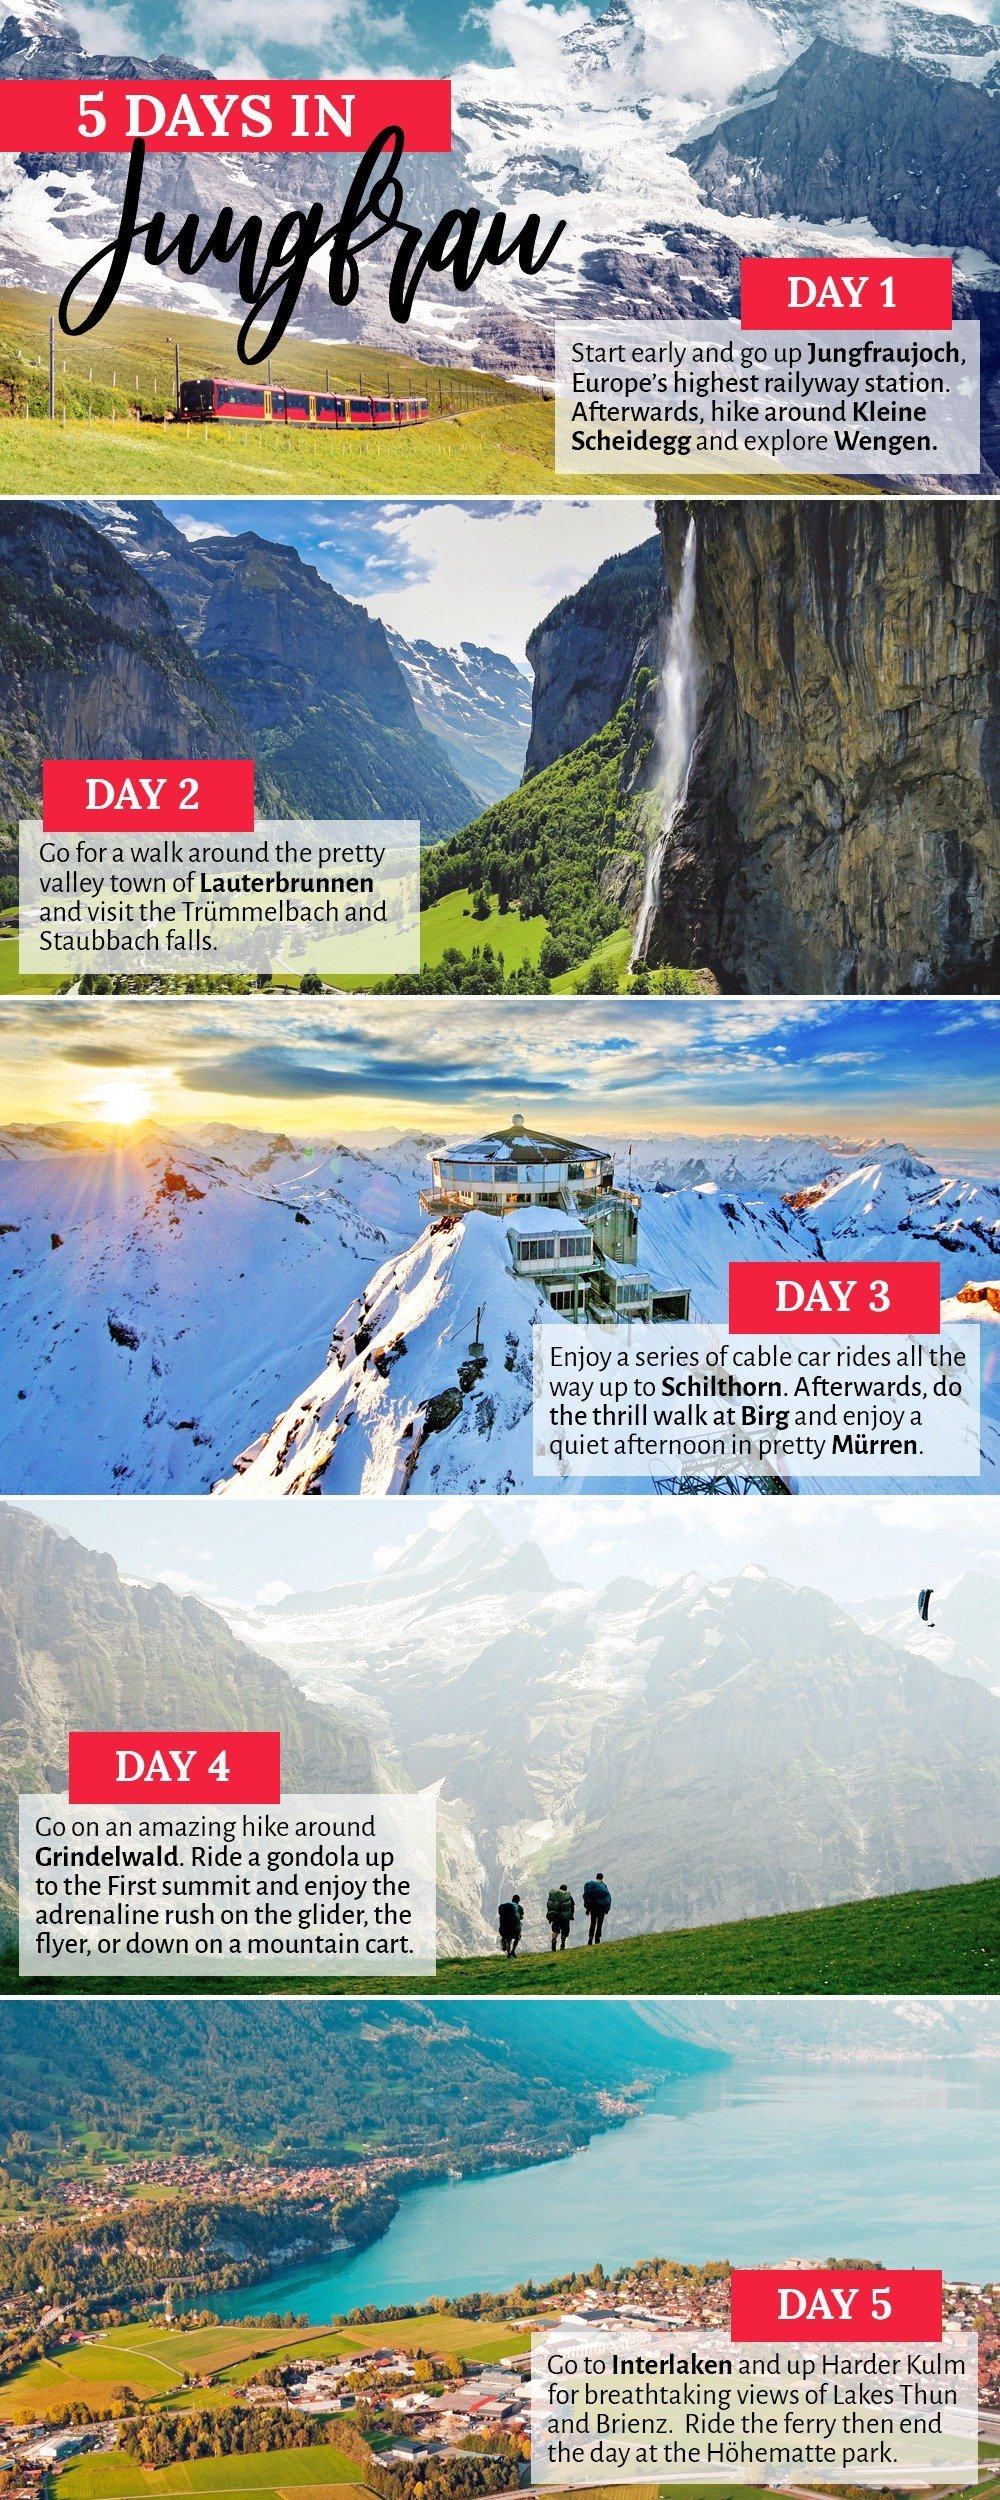 Enjoy the perfect little holiday in the Swiss Alps. Spend at least 5 days in Jungfrau and enjoy stunning views of majestic snow-capped peaks and dreamy alpine meadows, then unwind in cozy chalets and indulge in hearty cuisine. Here's your essential travel guide to Jungfrau, Switzerland.